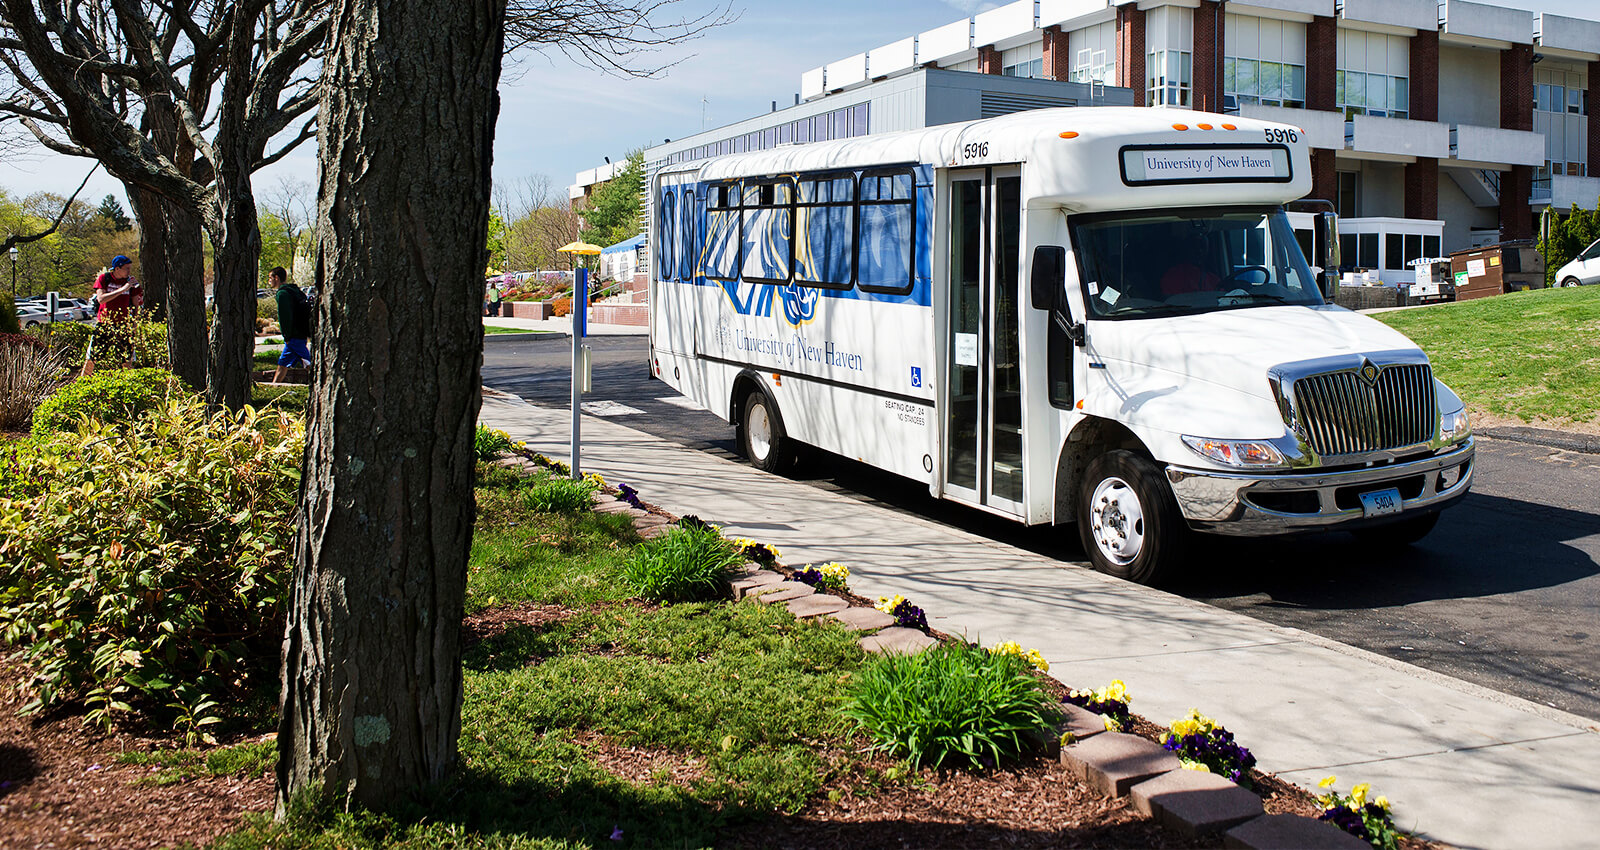 shuttles and transportation - university of new haven